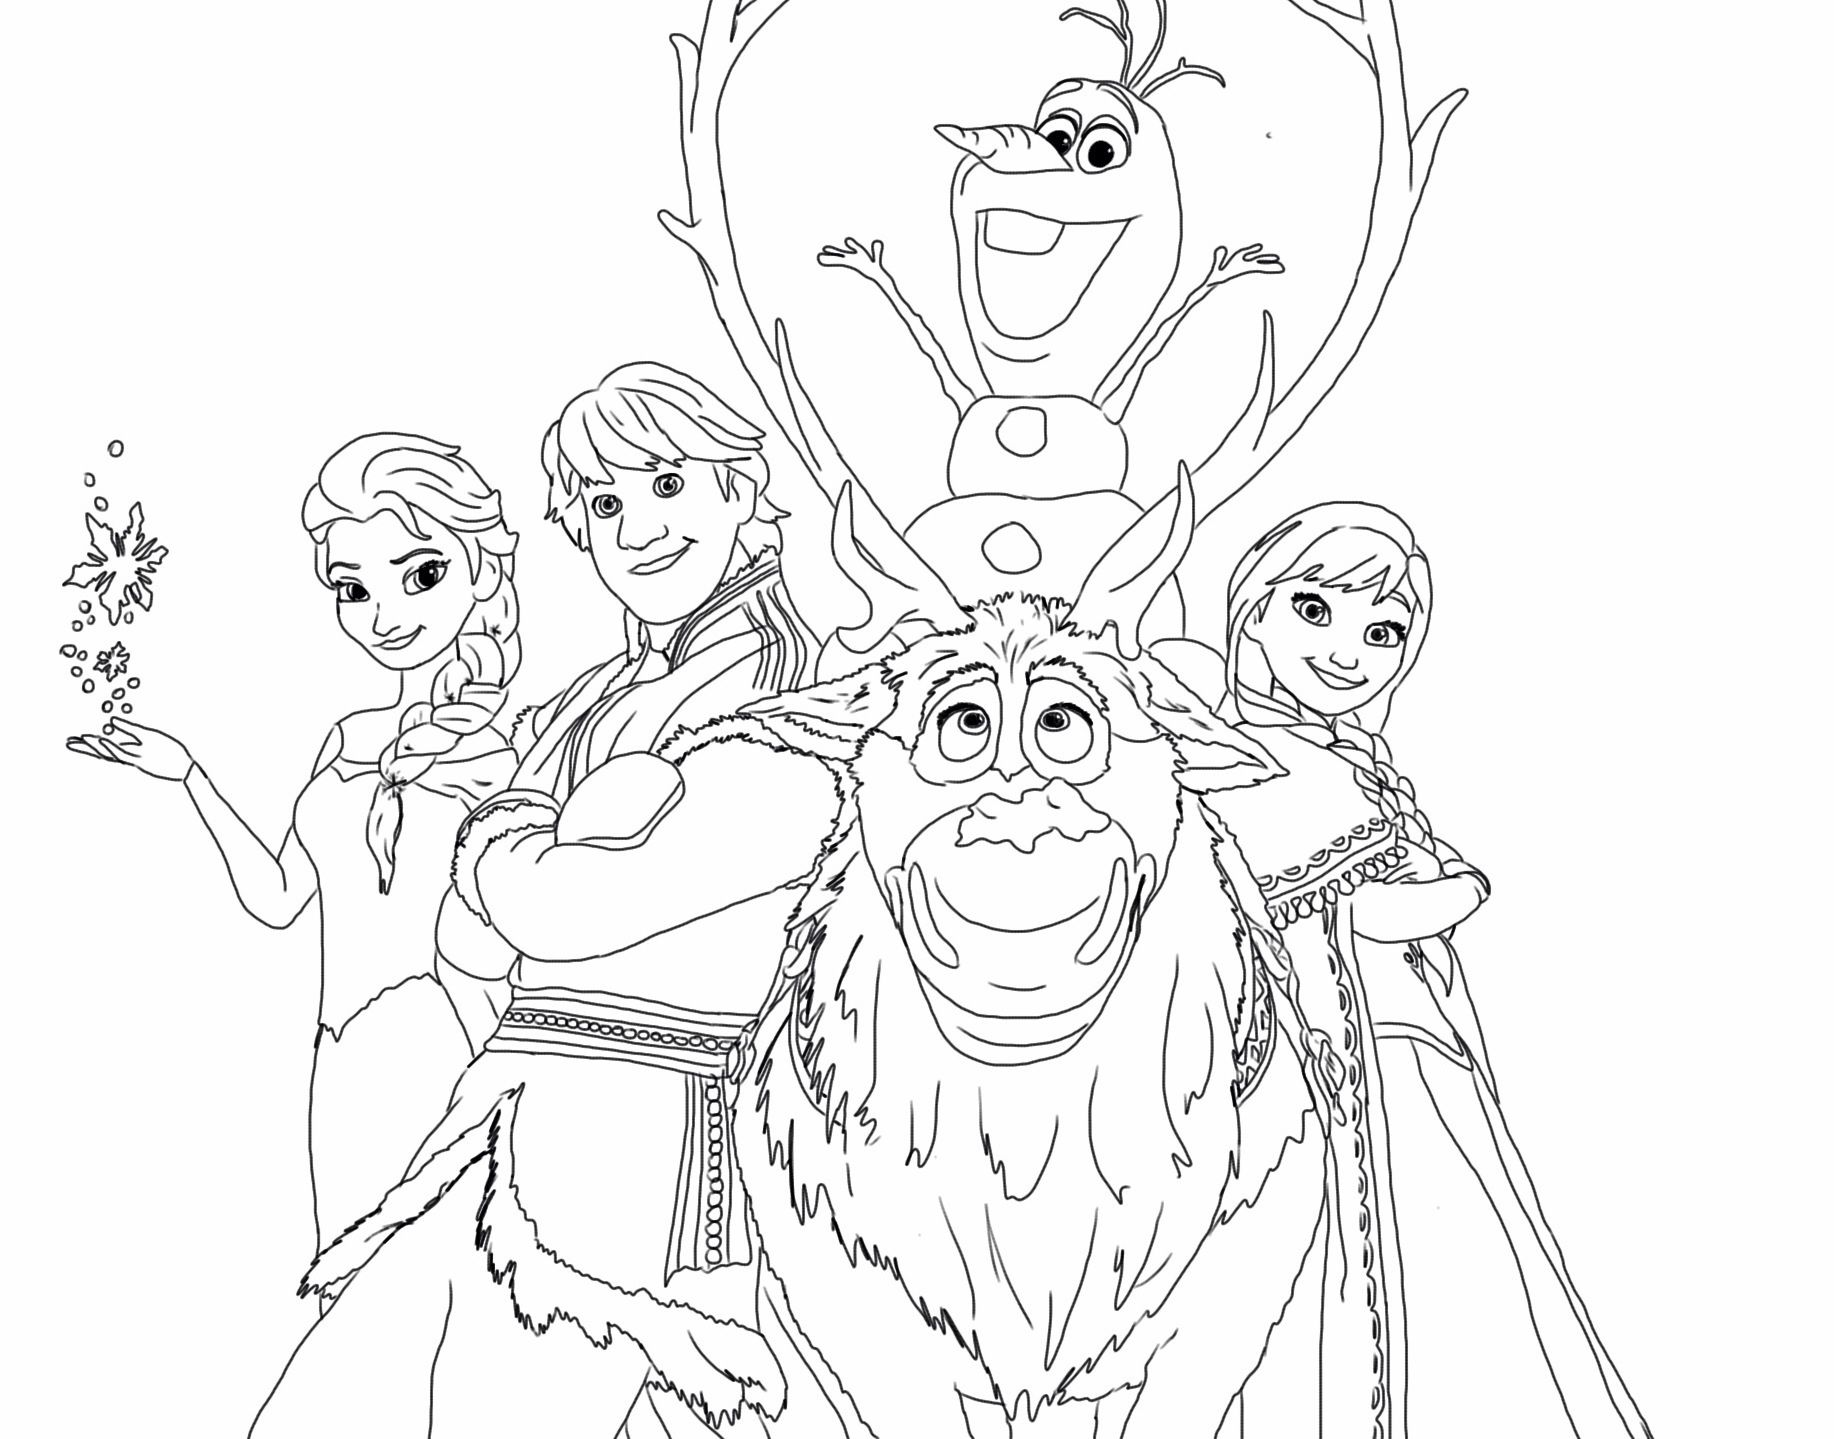 disney character outlines disney outline drawing at getdrawings free download outlines disney character